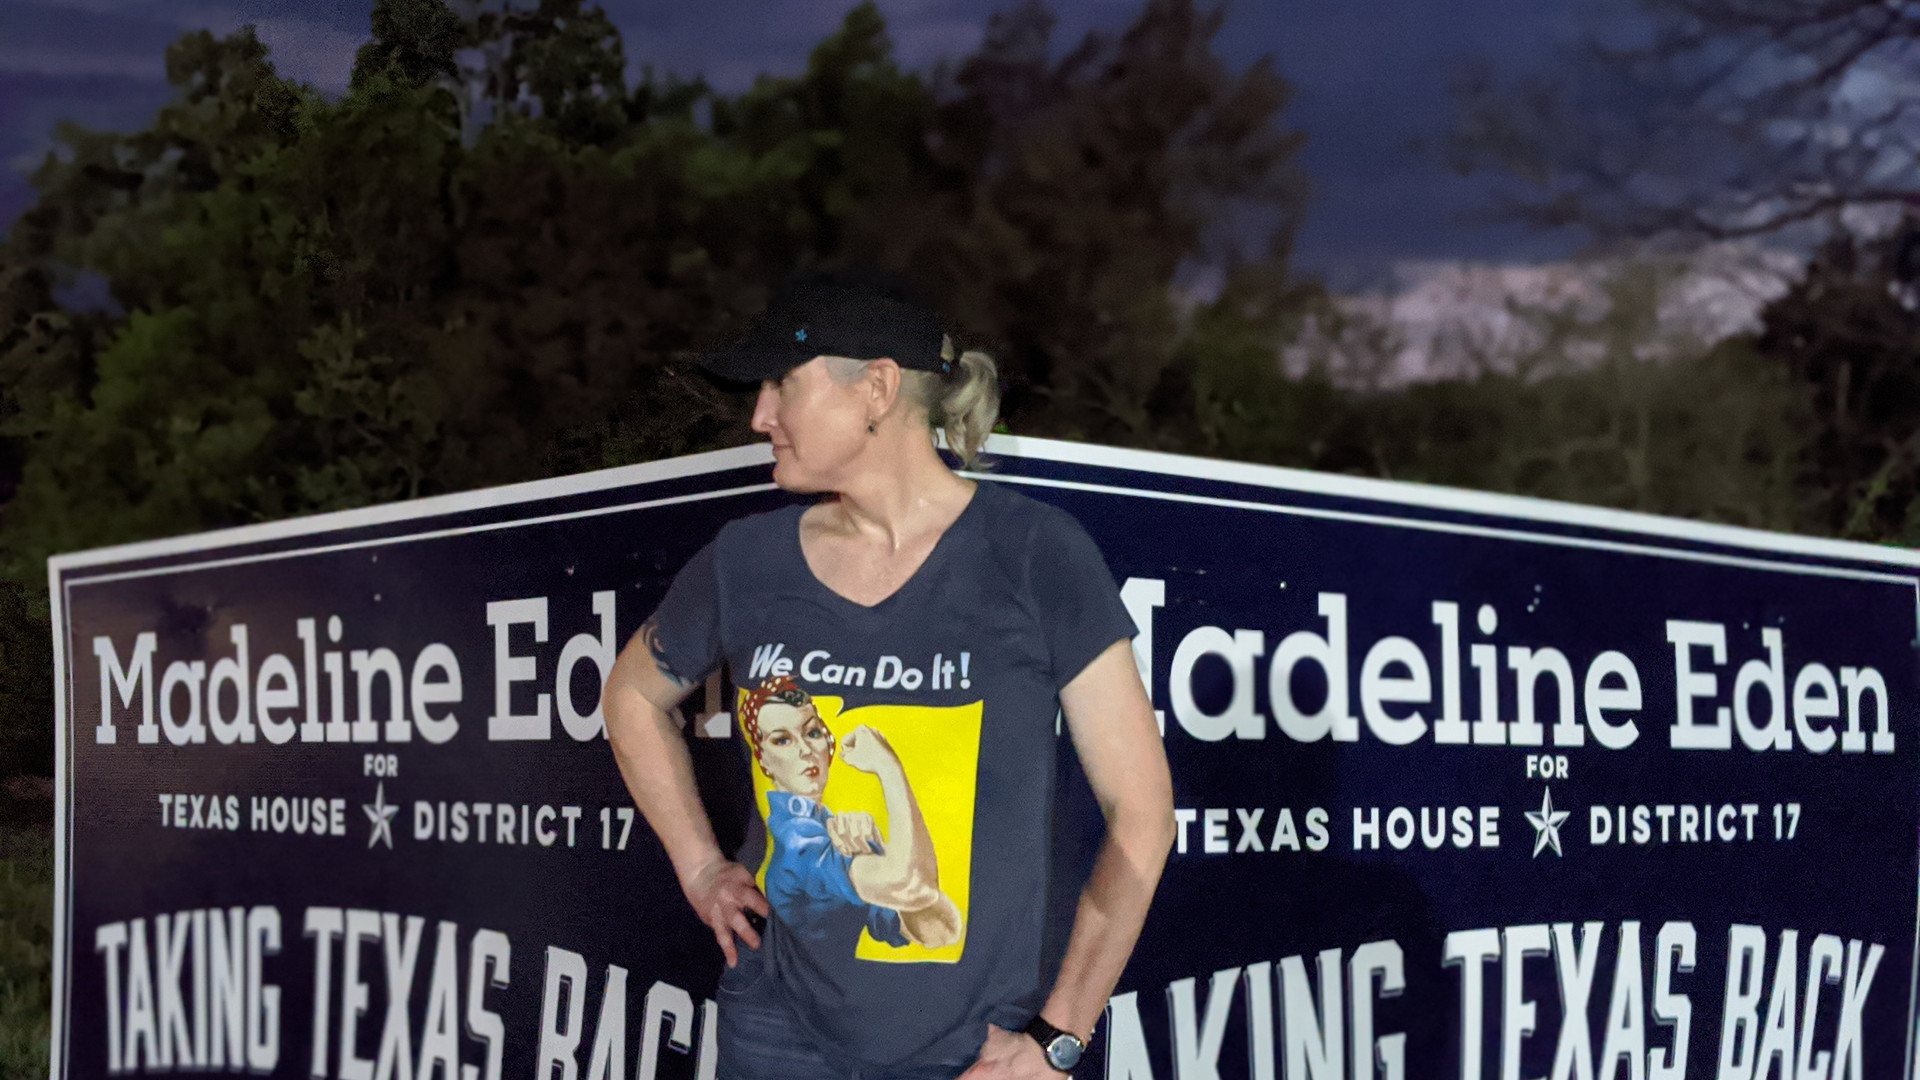 Madeline Eden Taking Texas Back